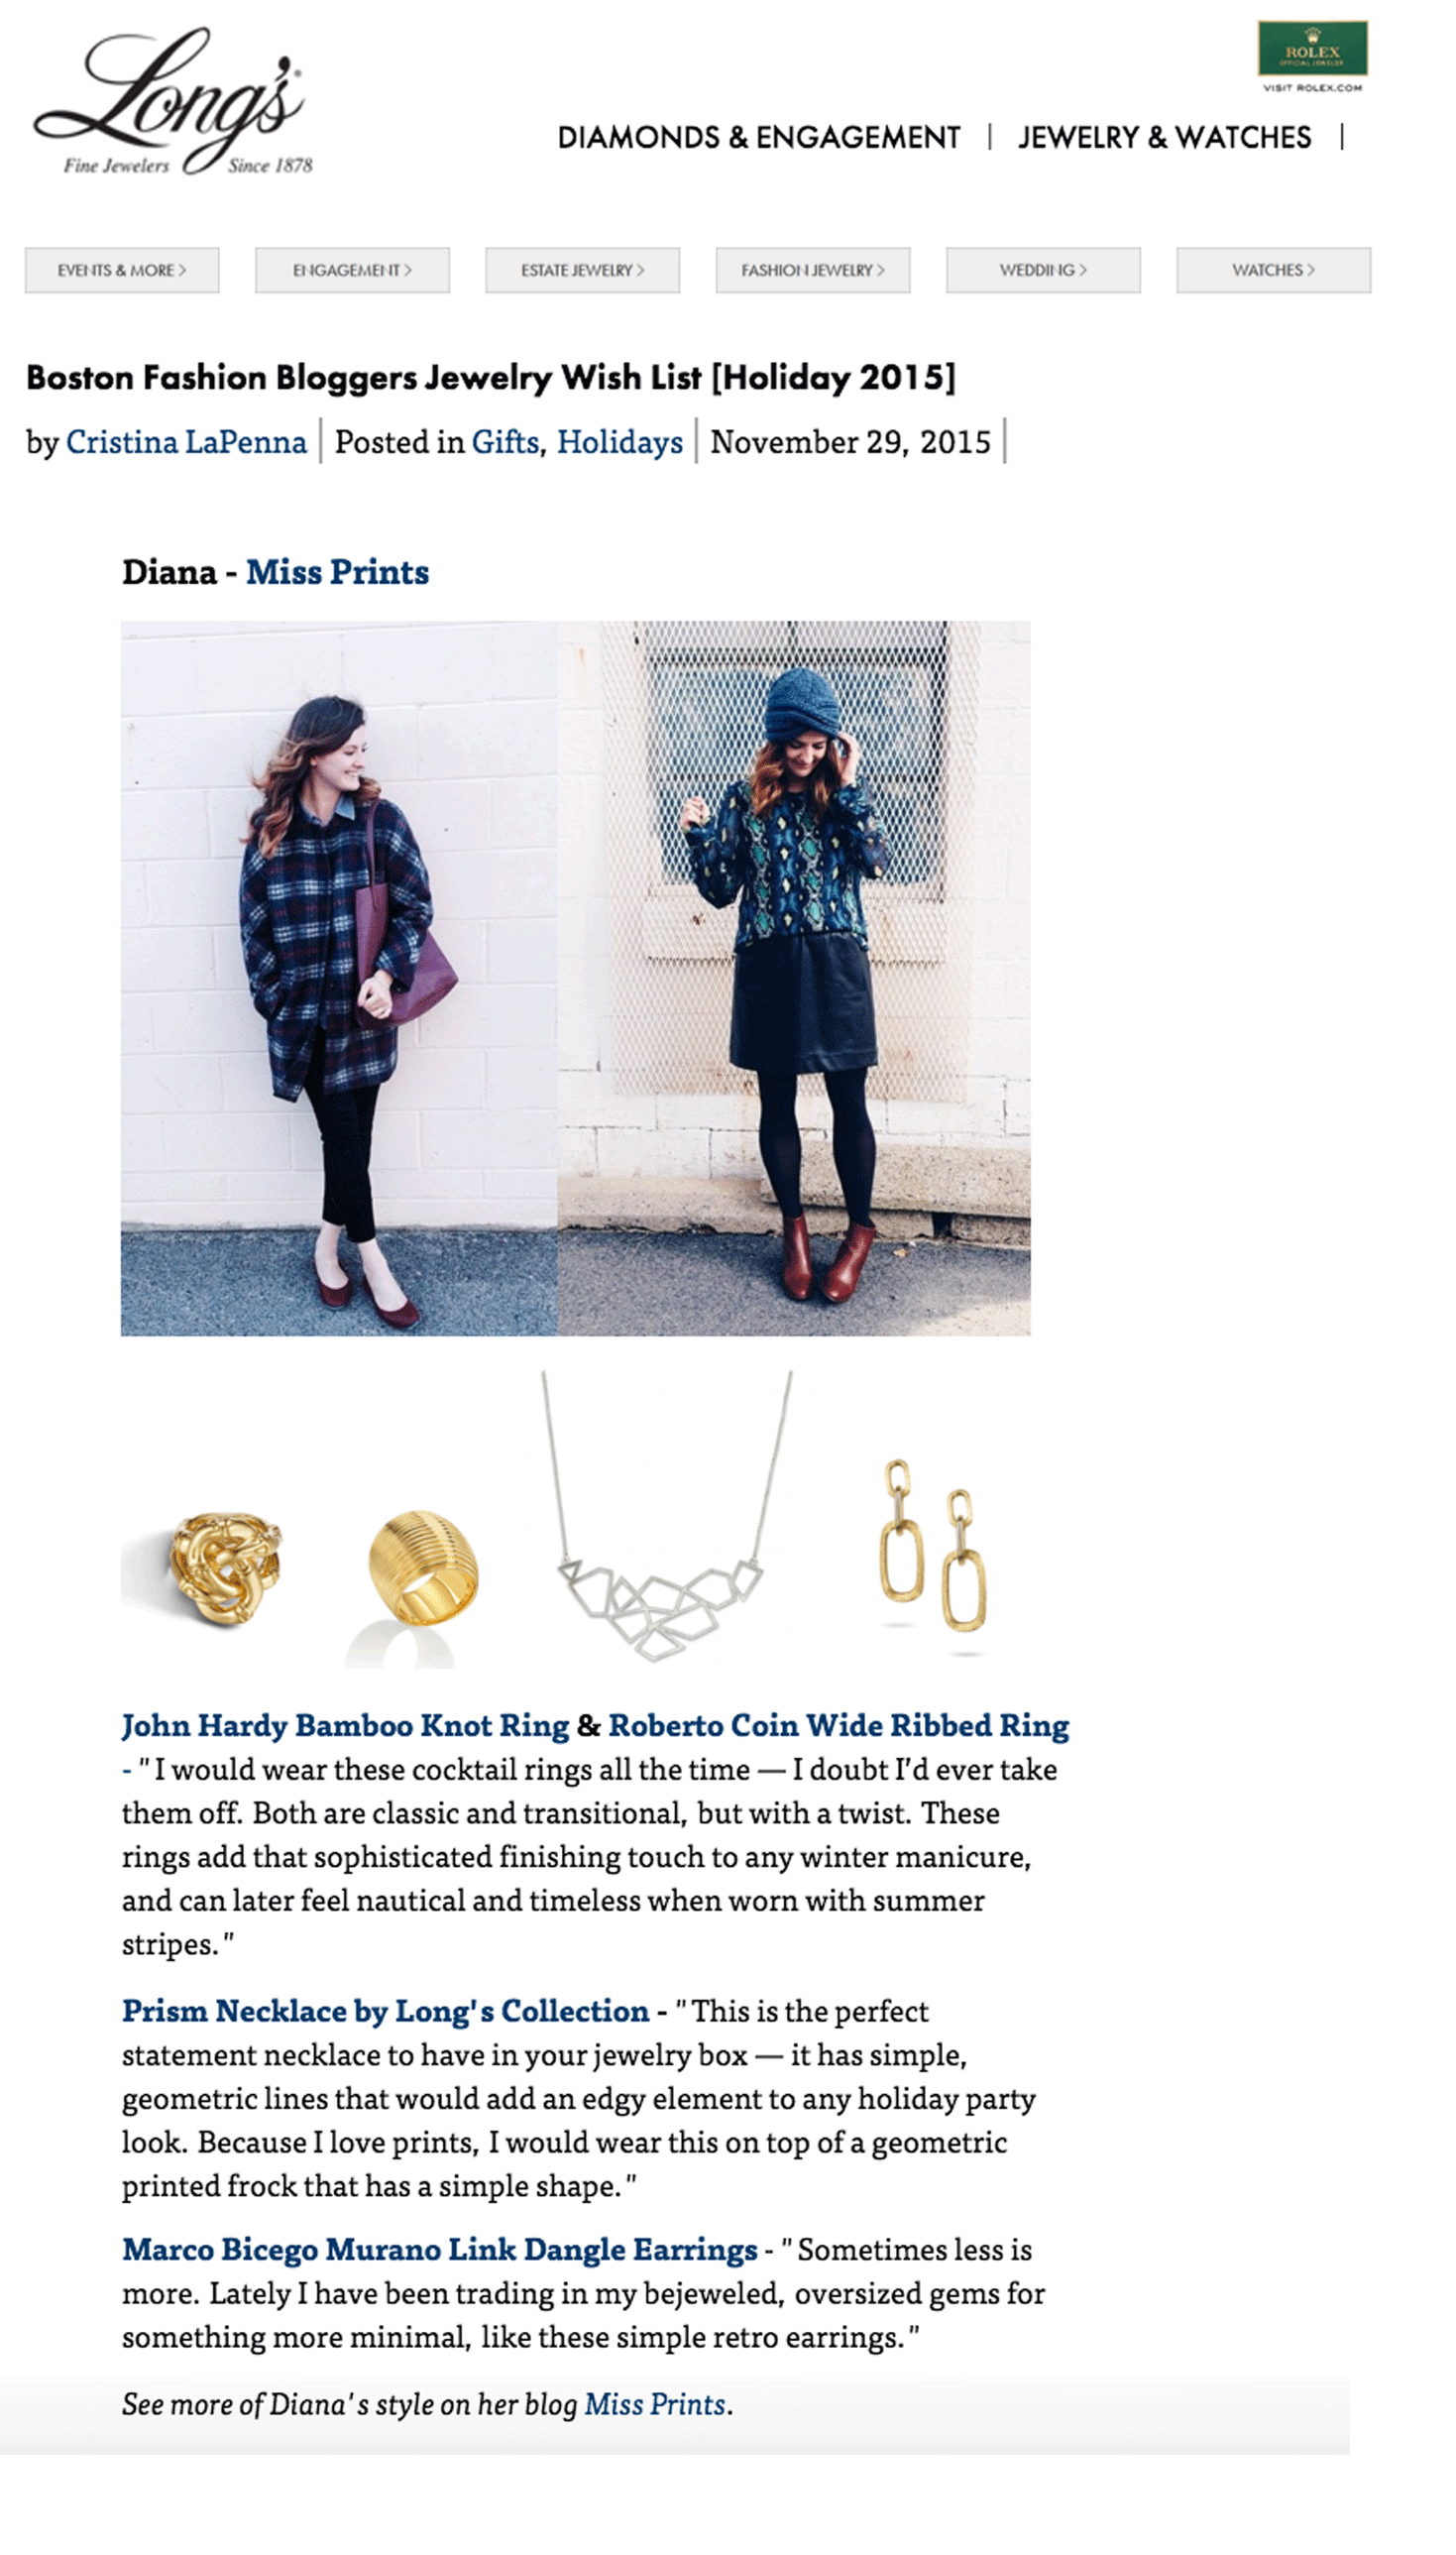 LONG'S JEWELRY HOLIDAY WISH LIST | DECEMBER 2015